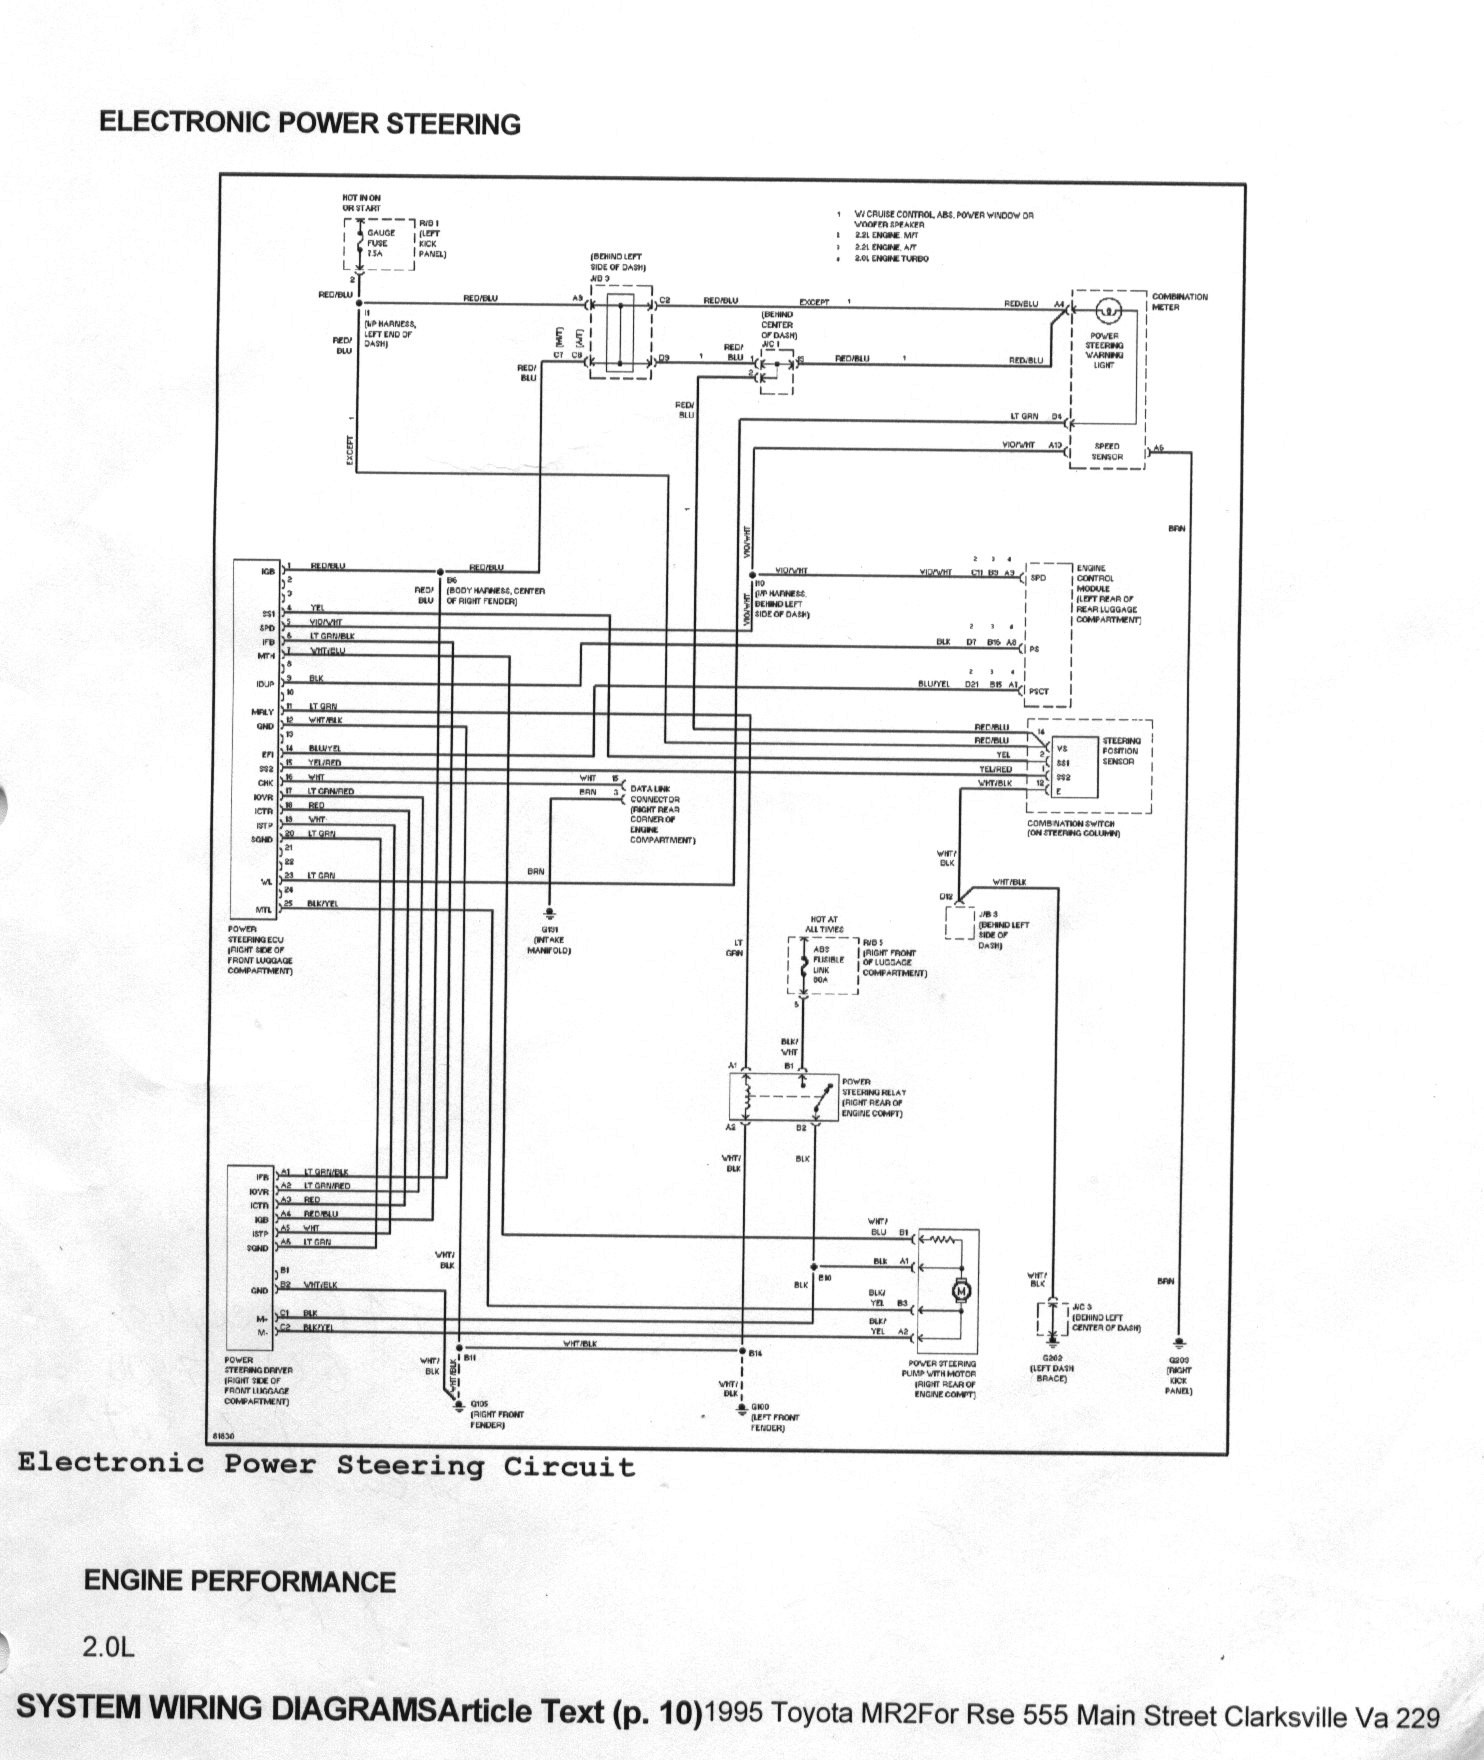 electric power steering honda element owners club forum rh elementownersclub com 2000 Honda Civic Wiring Diagram 2009 Honda Civic Wiring Diagram